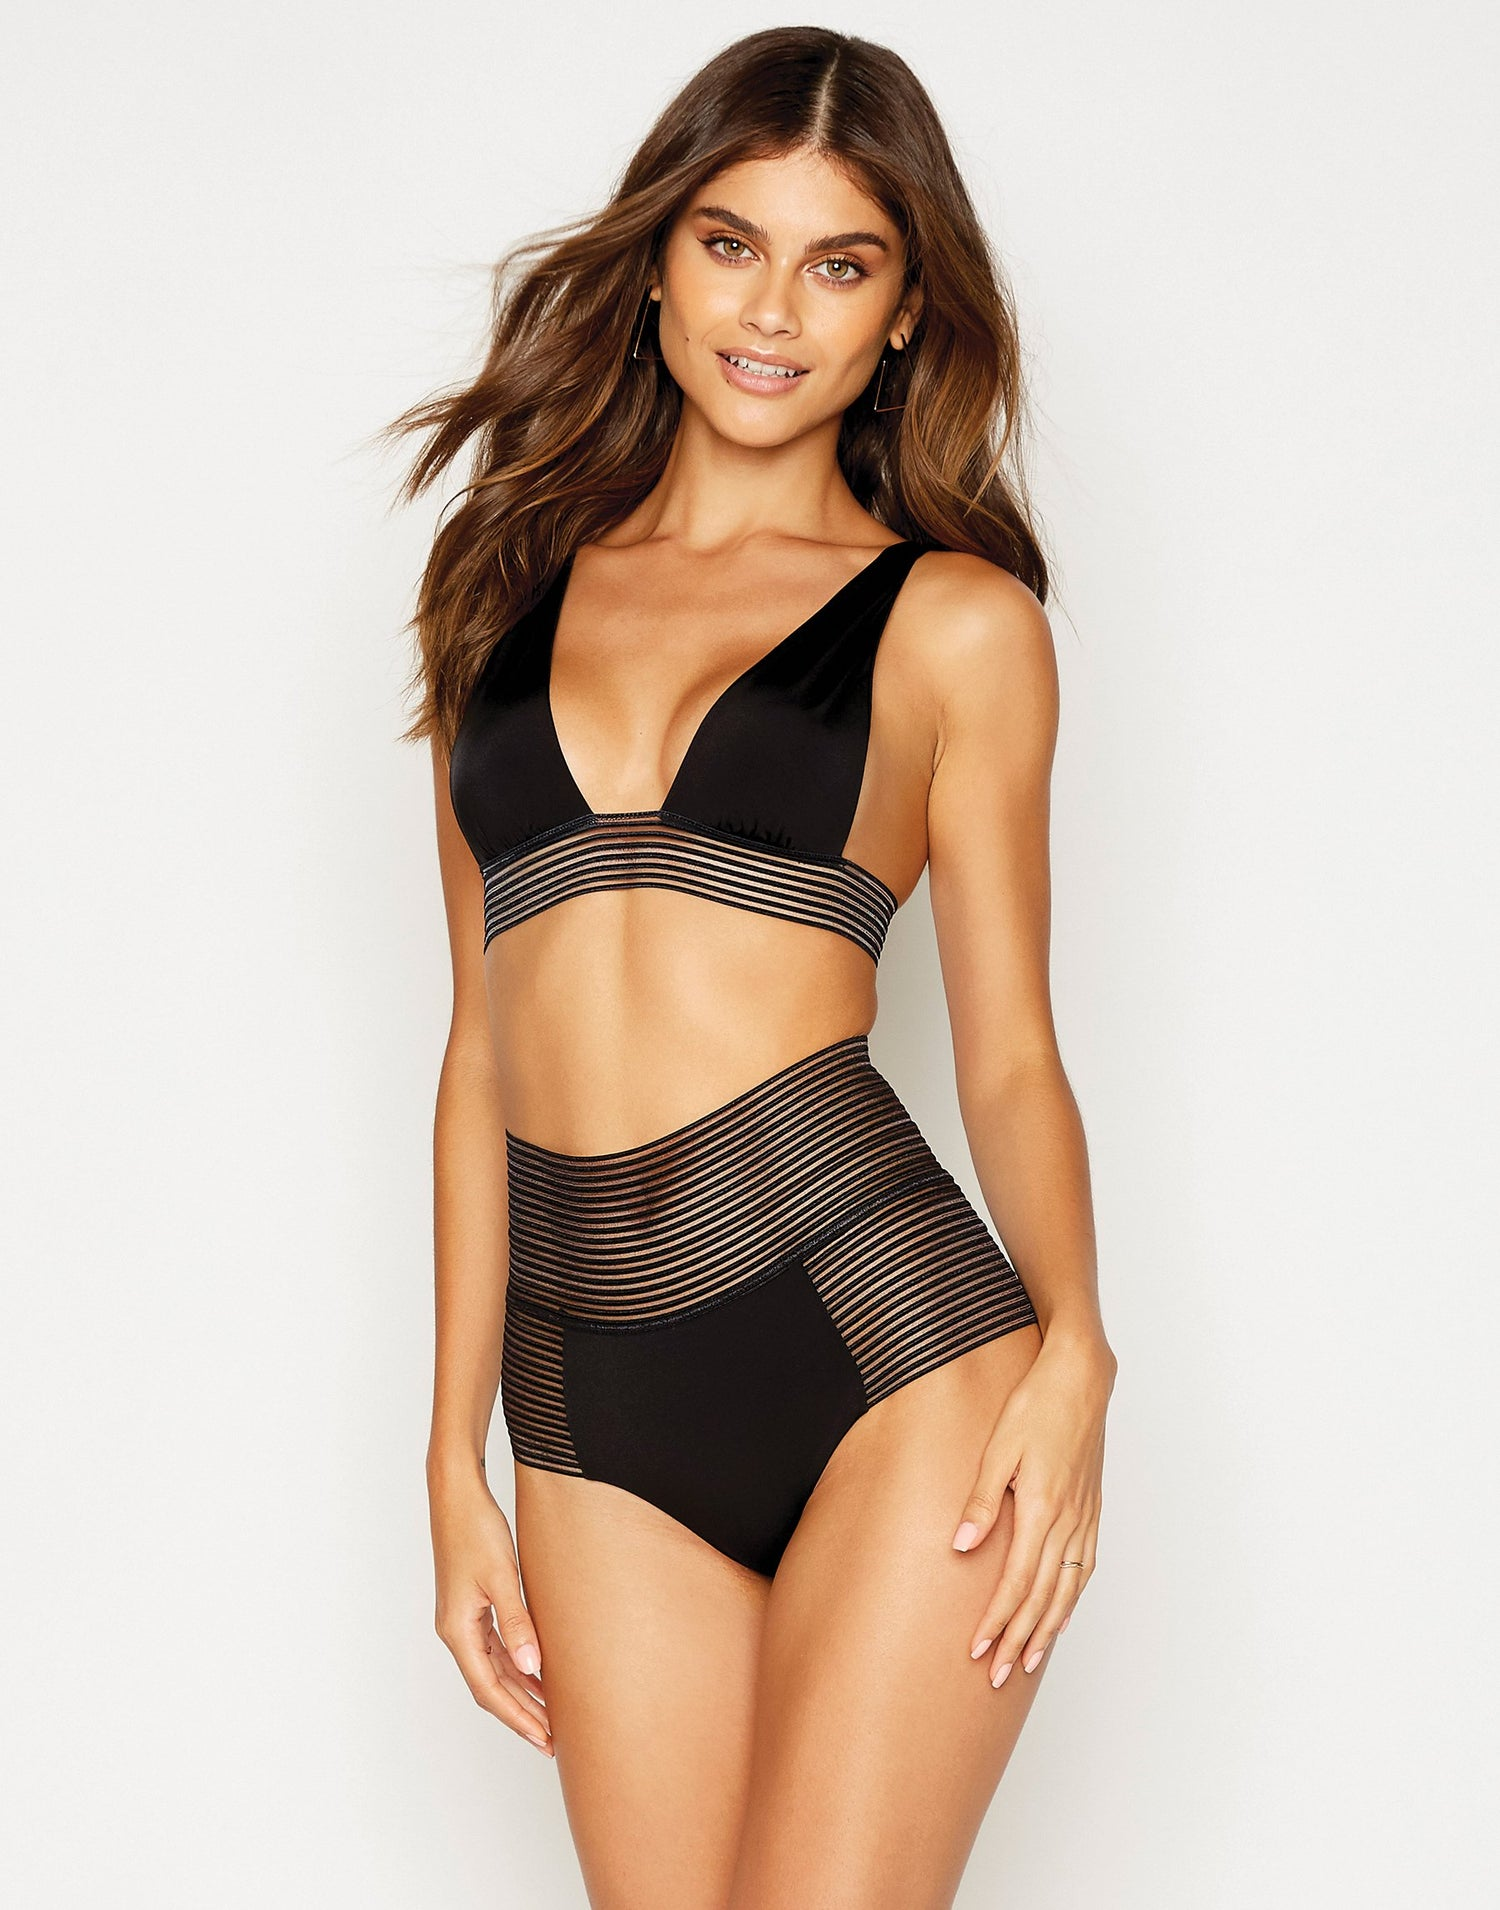 Sheer Addiction High Apex Bikini Top in Black with Sheer Elastic Stripes - front view